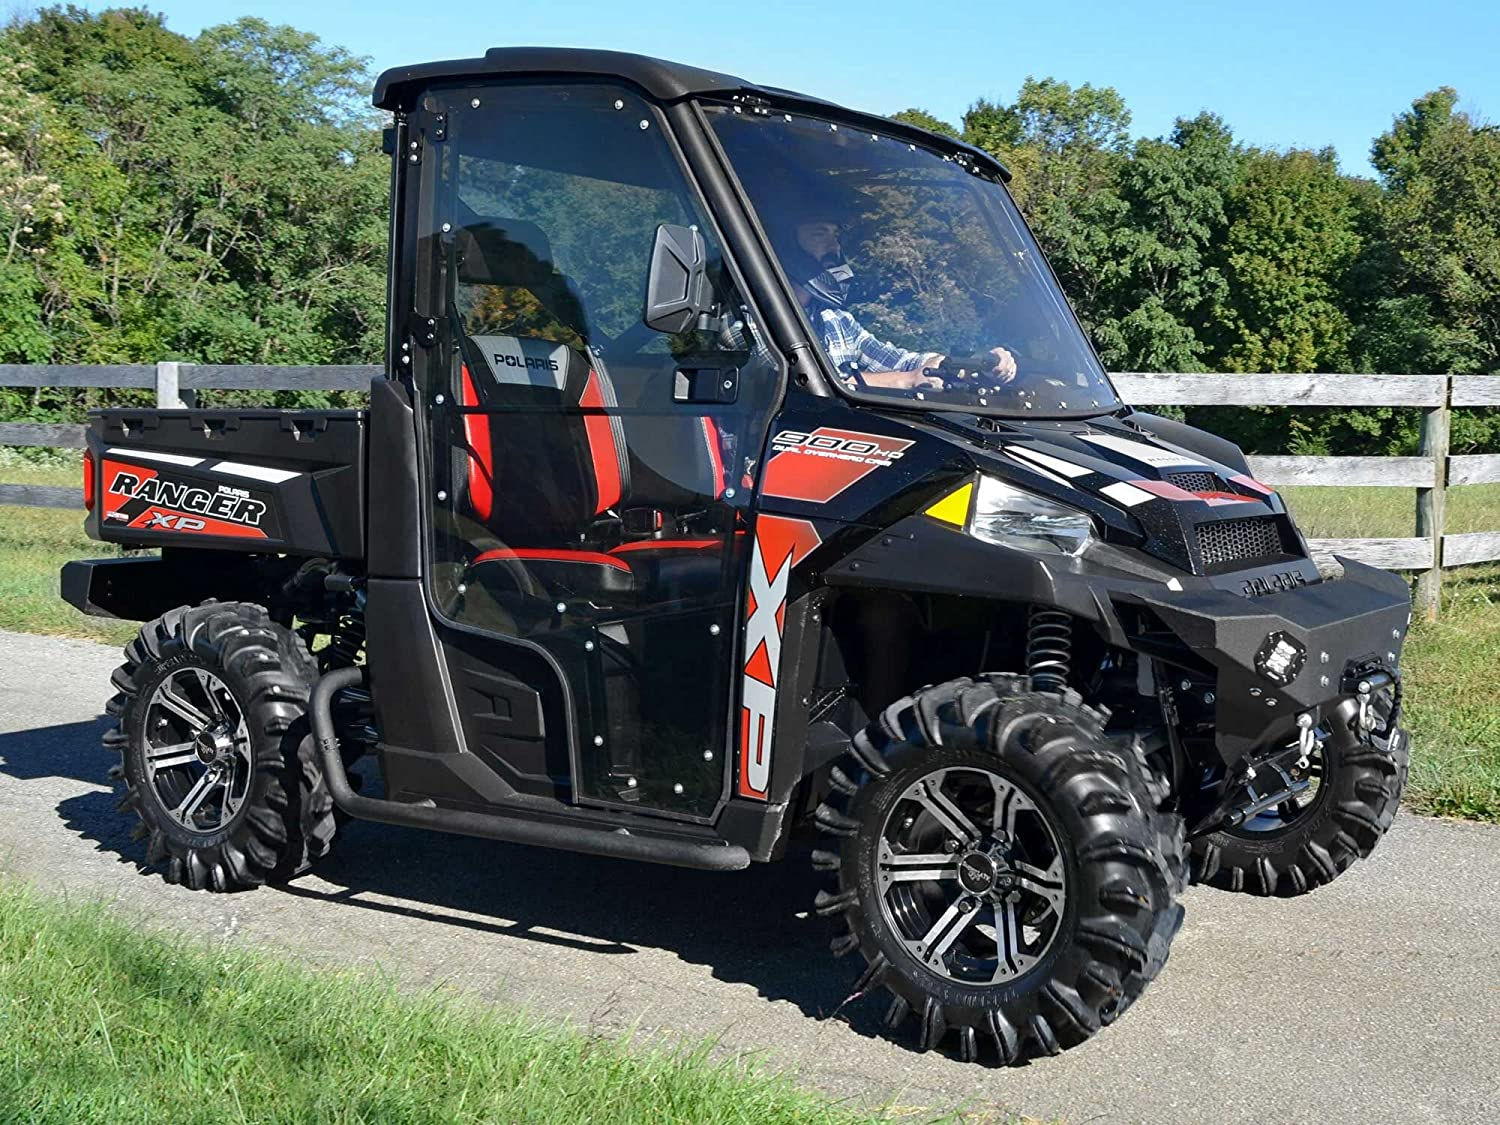 Polaris Side By Side >> Superatv Full Cab Doors For Polaris Ranger Xp Full Size 570 900 1000 Includes Side View Mirrors Pair Of Front Doors